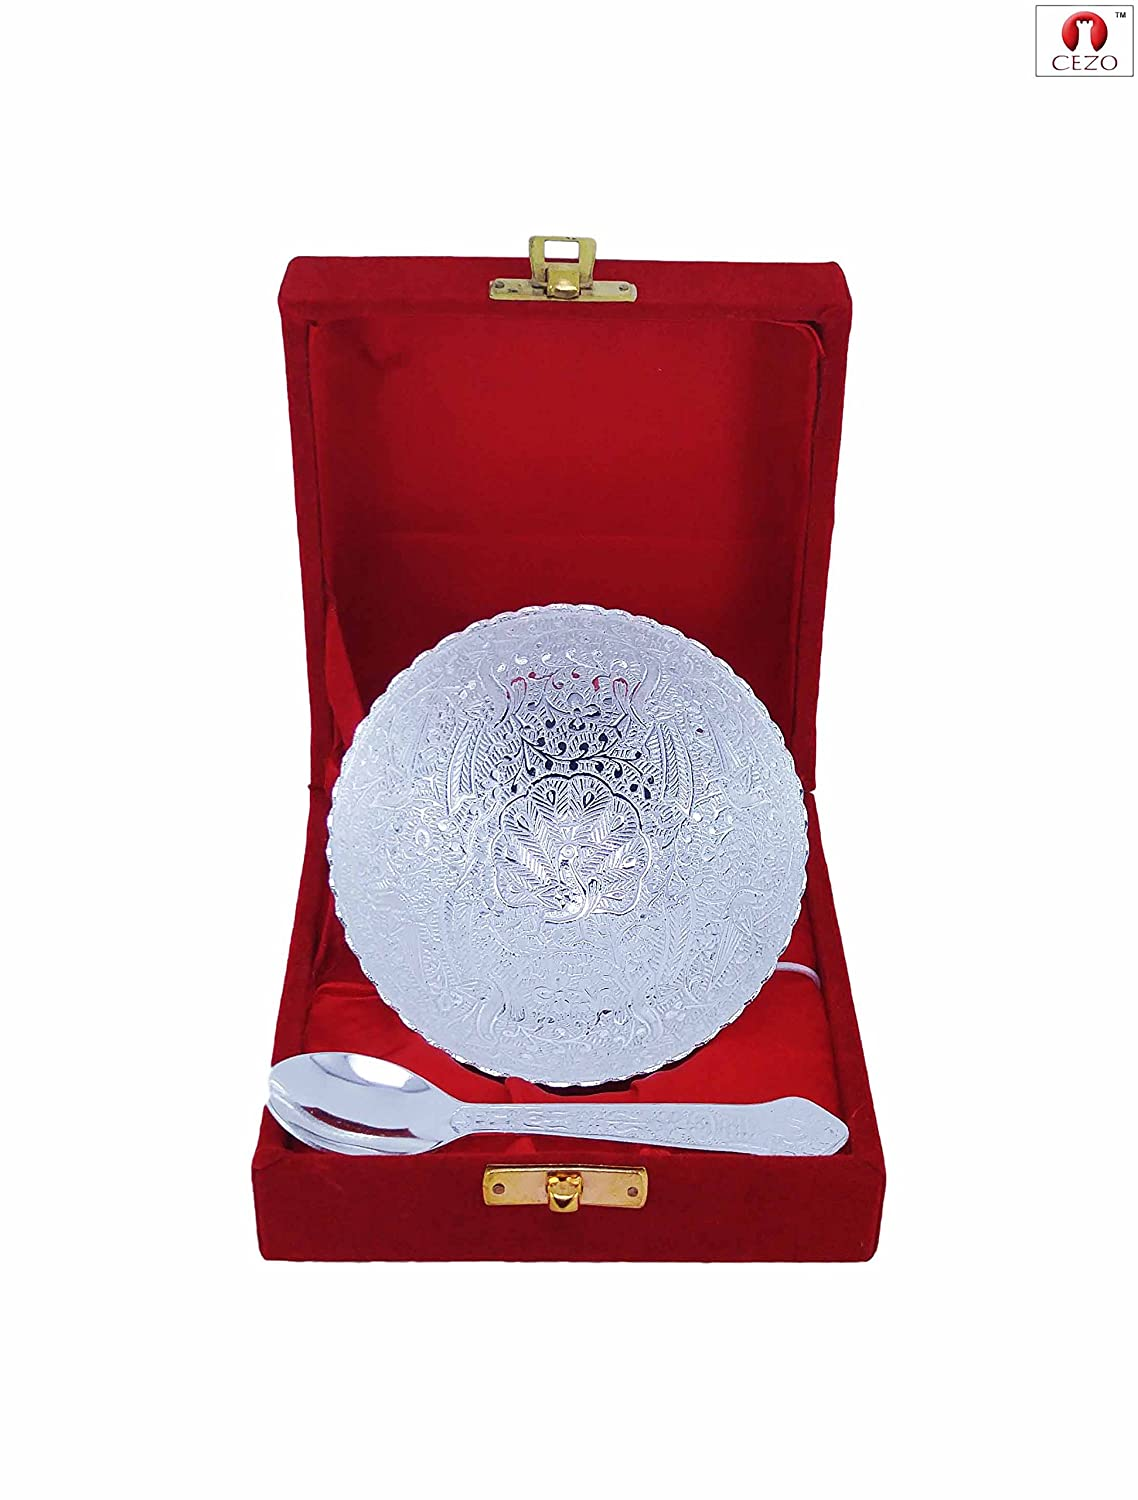 CEZO Decorative German Silver Round Handcrafted Silver Bowl and Spoon Set With Intricate Carvings (Leaf Shape)